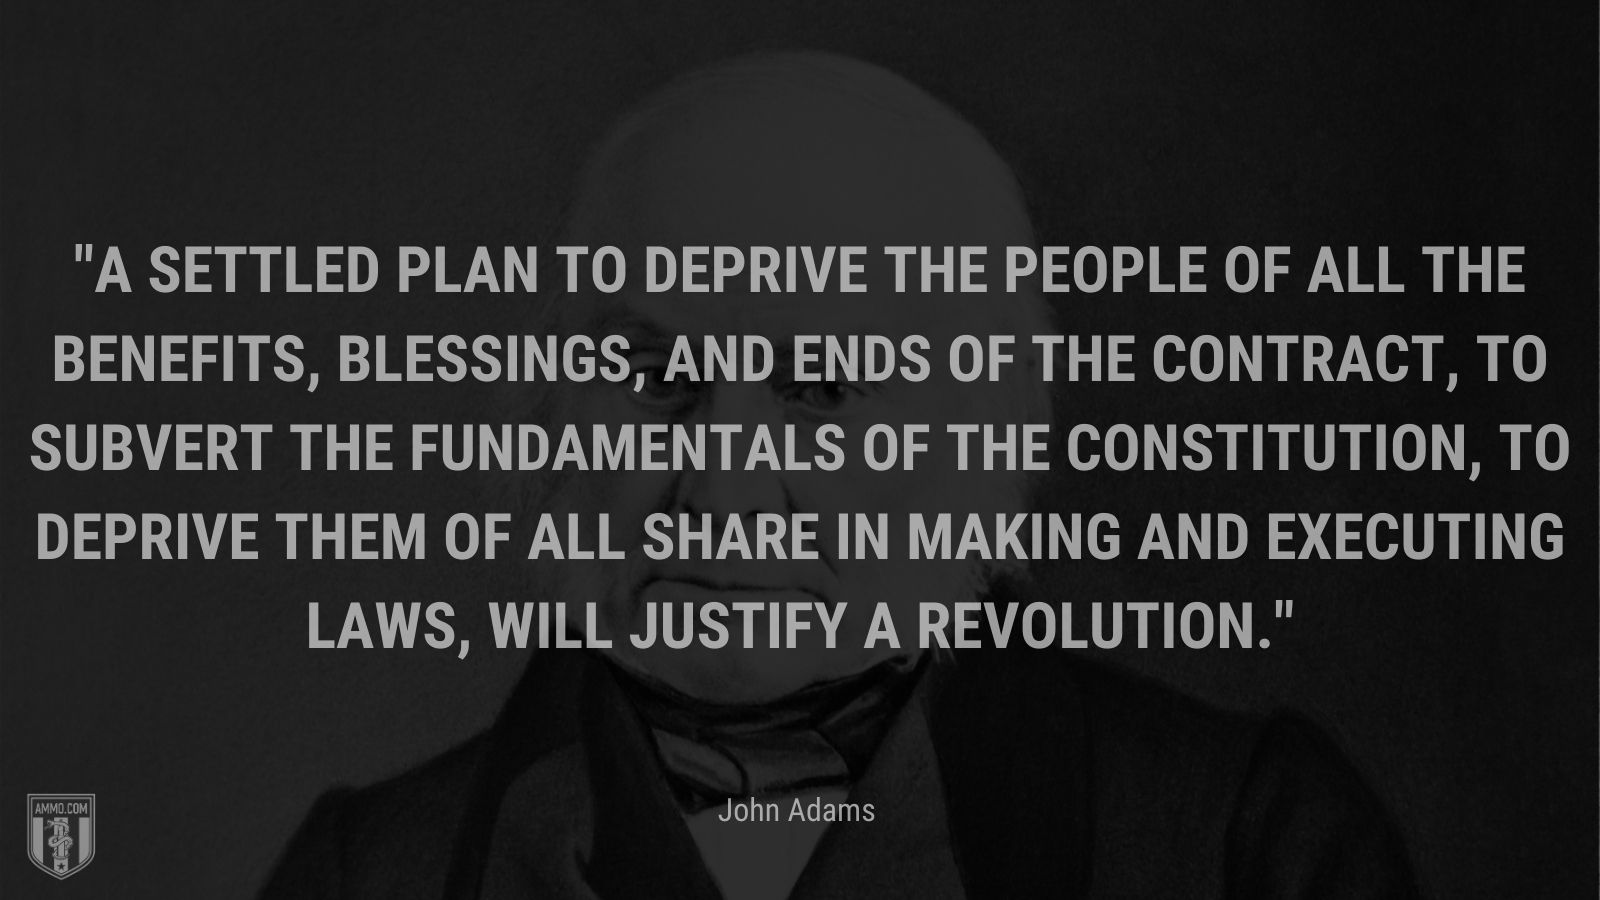 """""""A settled plan to deprive the people of all the benefits, blessings, and ends of the contract, to subvert the fundamentals of the constitution, to deprive them of all share in making and executing laws, will justify a revolution."""" - John Adams"""